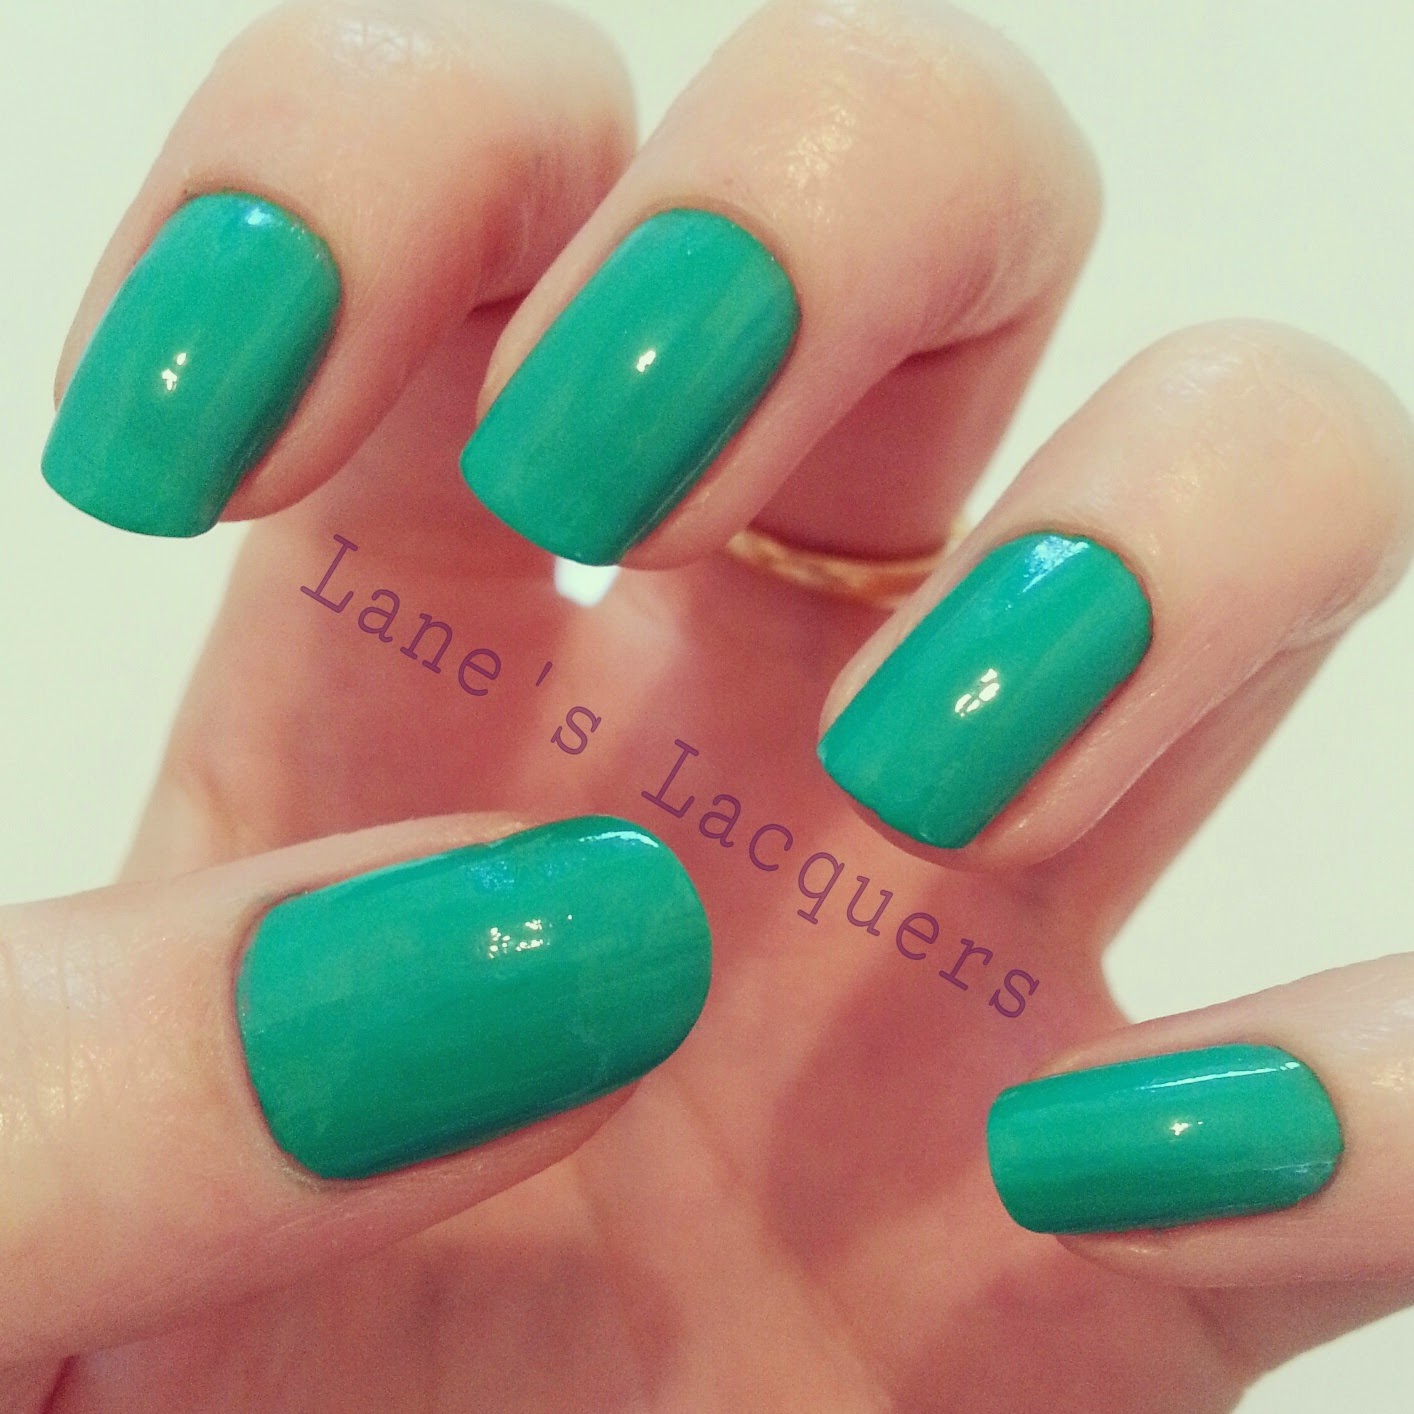 barry-m-summer-gelly-kiwi-swatch-manicure